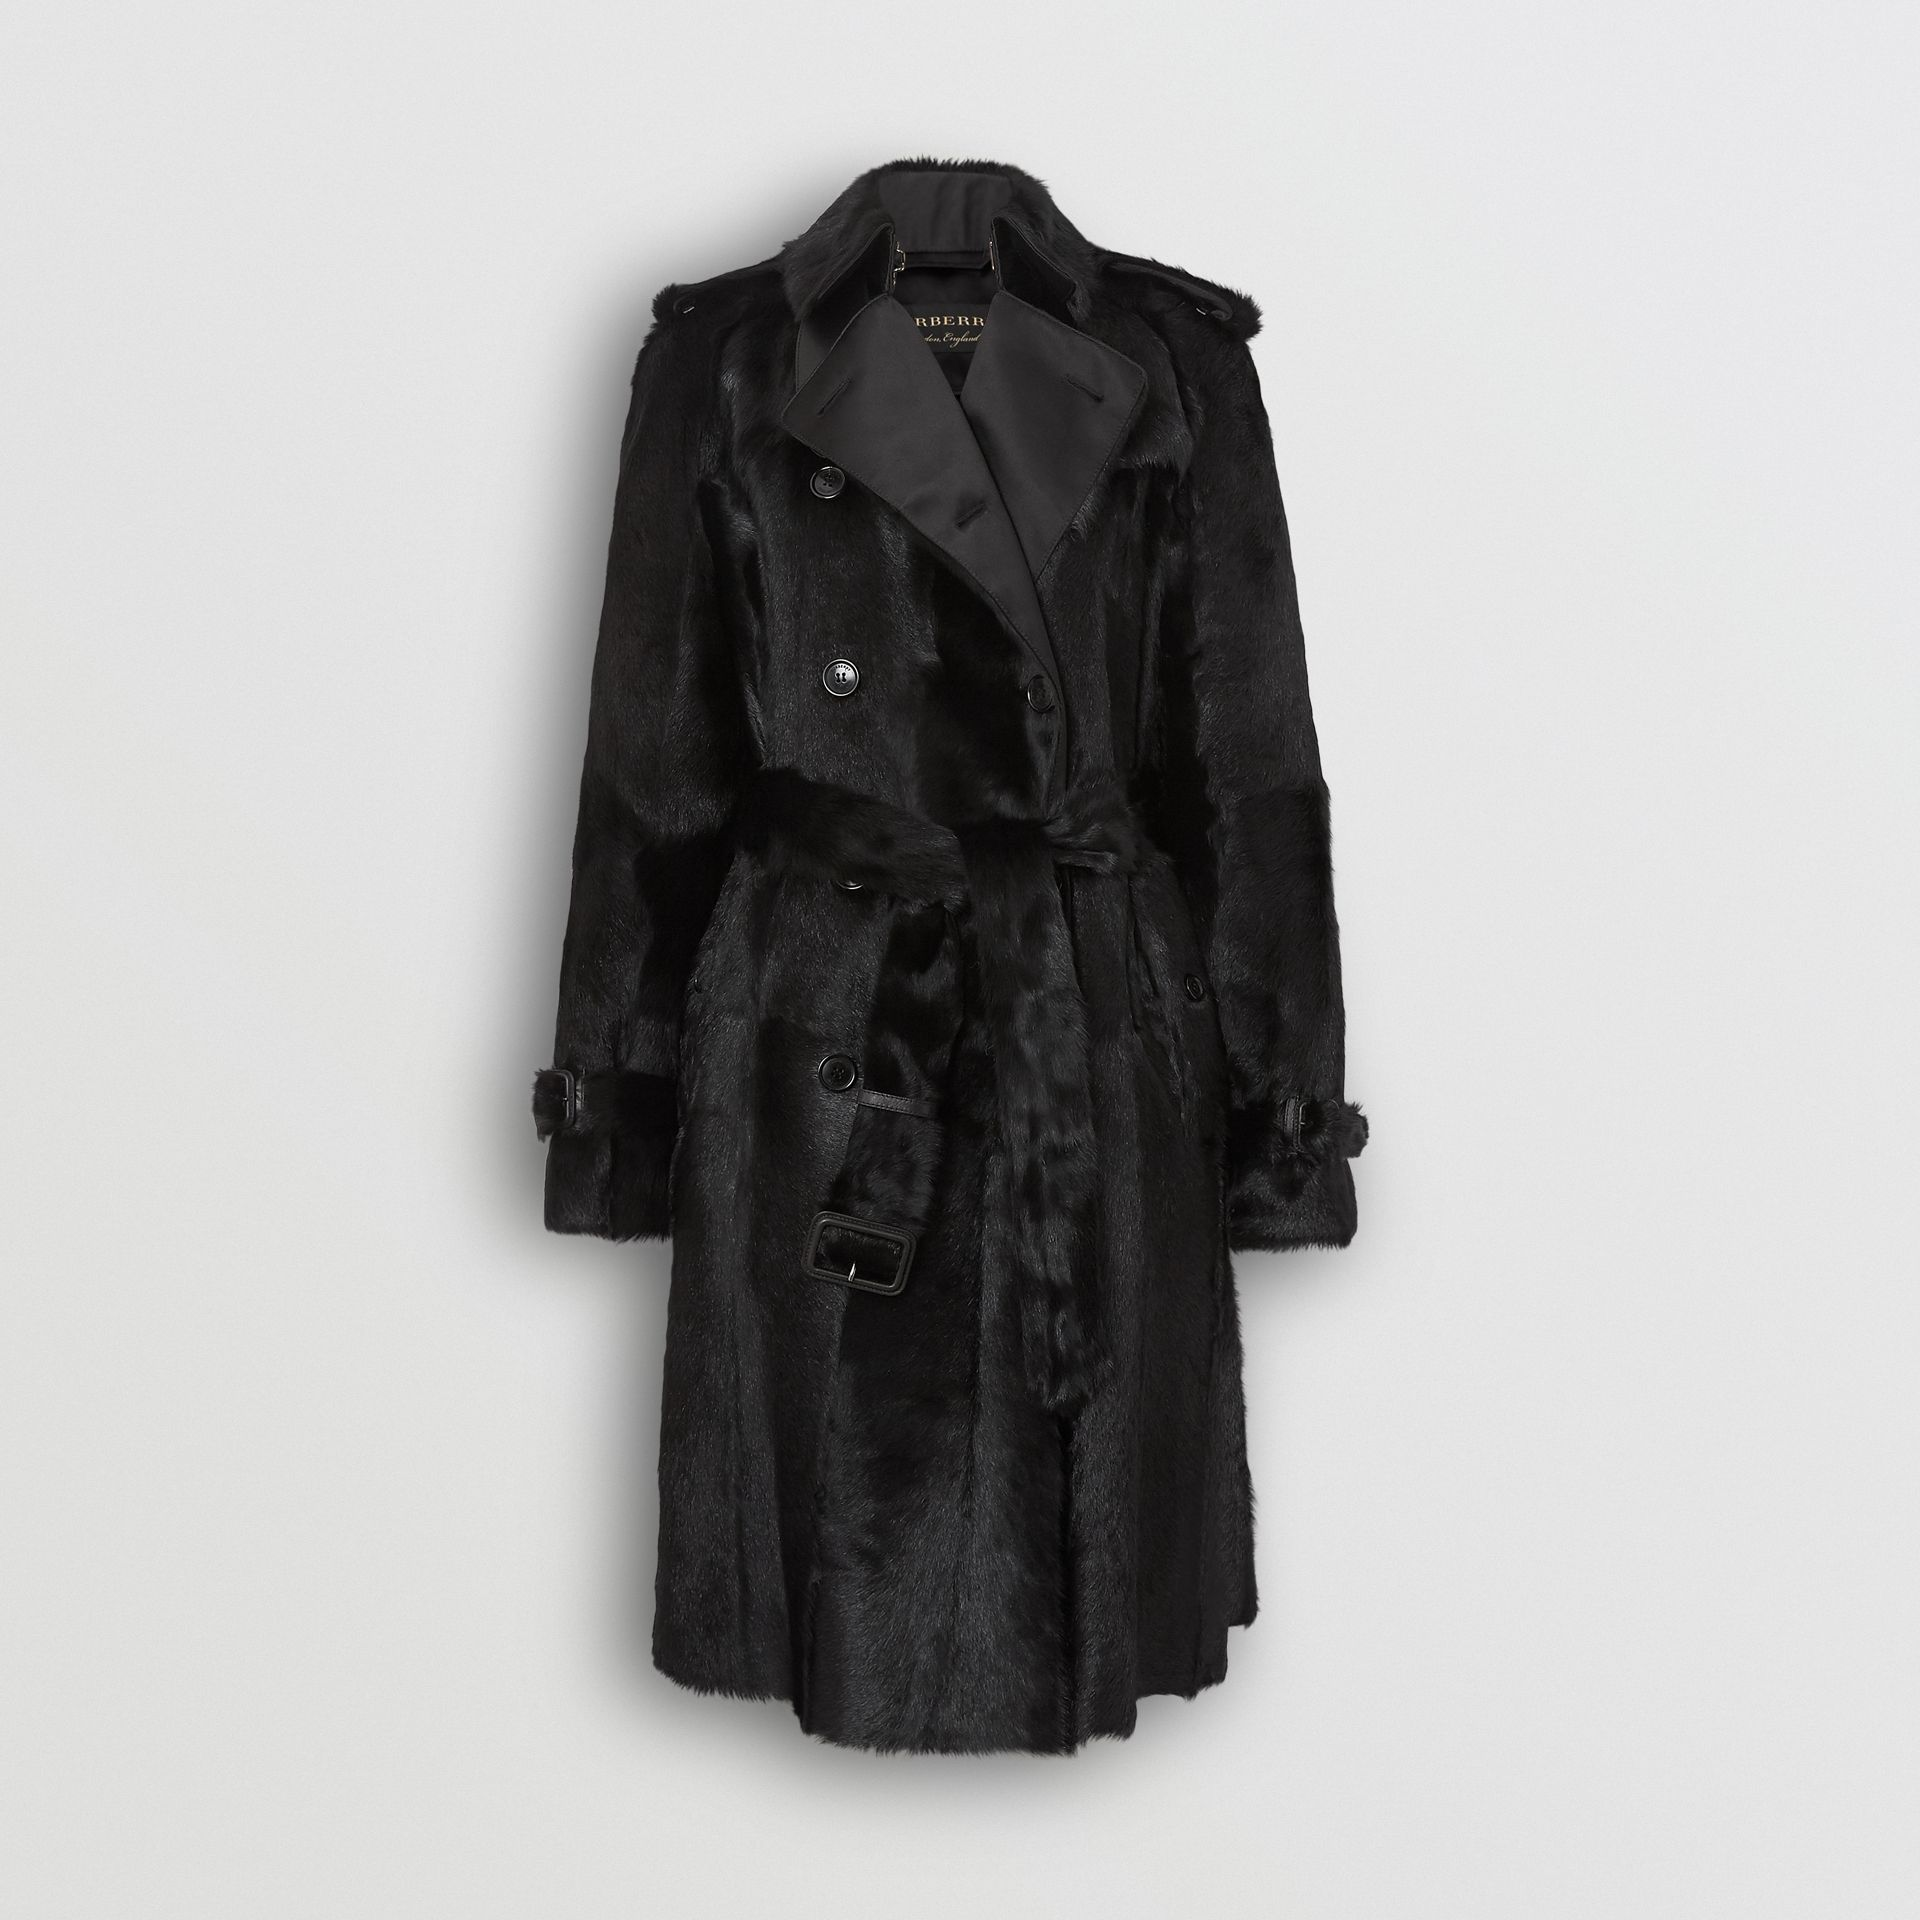 Goat Trench Coat in Black - Women | Burberry Canada - gallery image 3